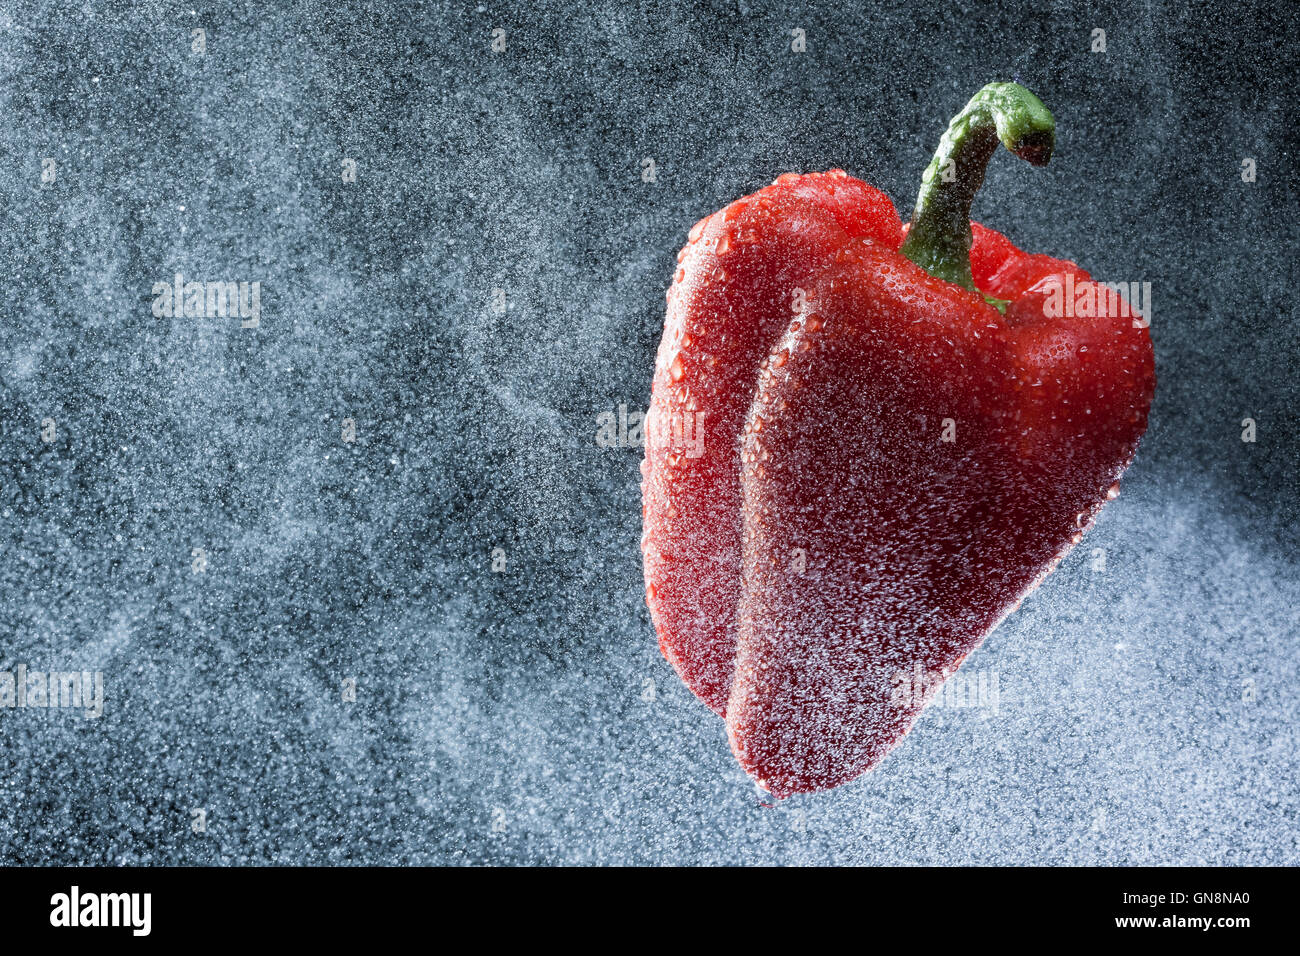 Red pepper in a spray against a black background. A series of fruits and vegetables in motion. Stock Photo